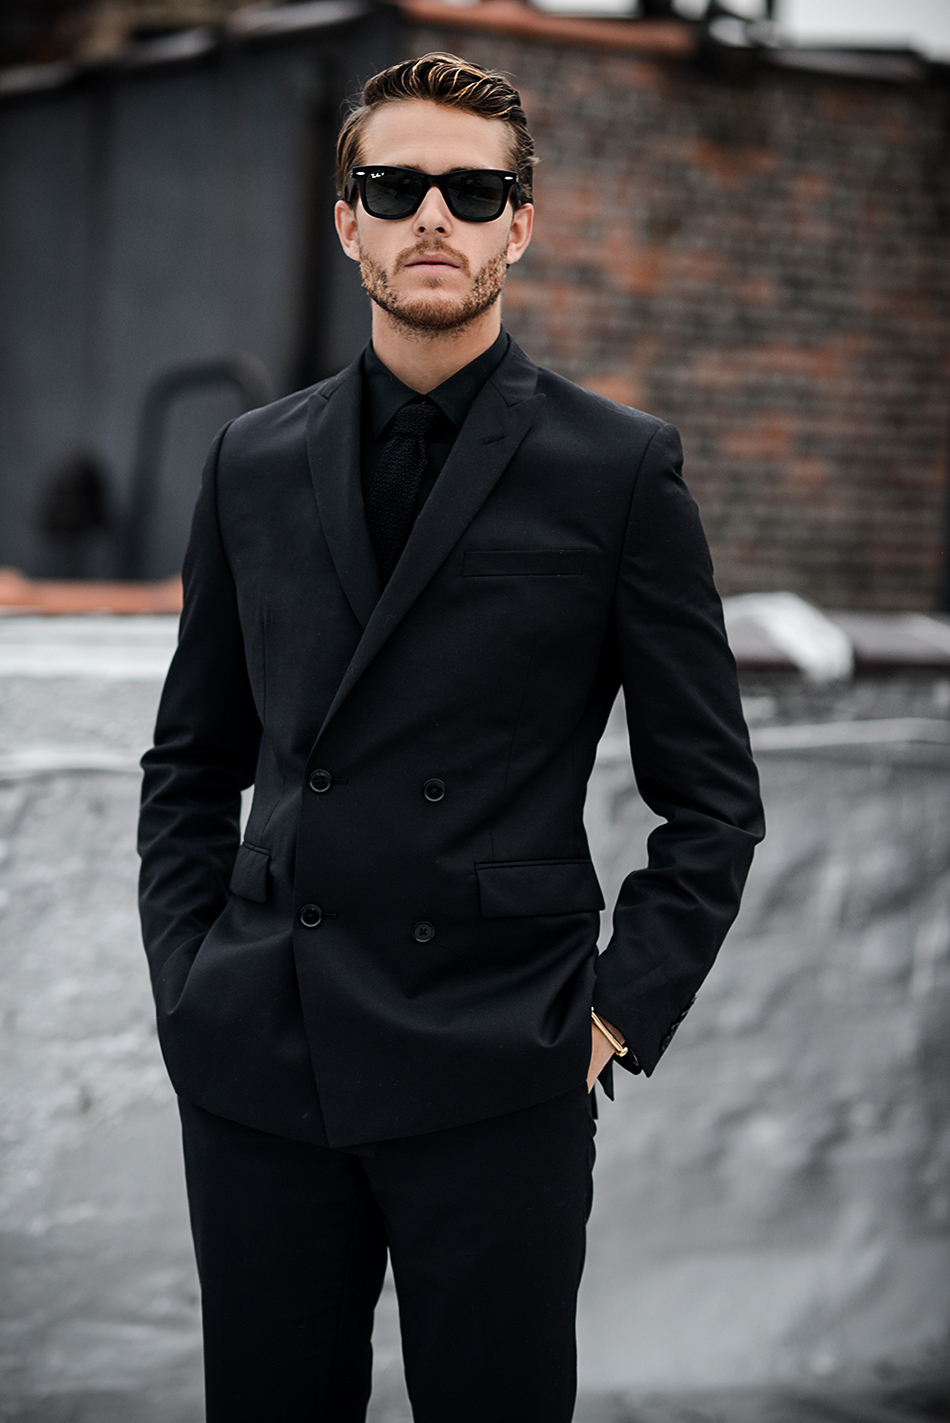 Dress shirt with black suit dress yy for Black suit with black shirt and tie